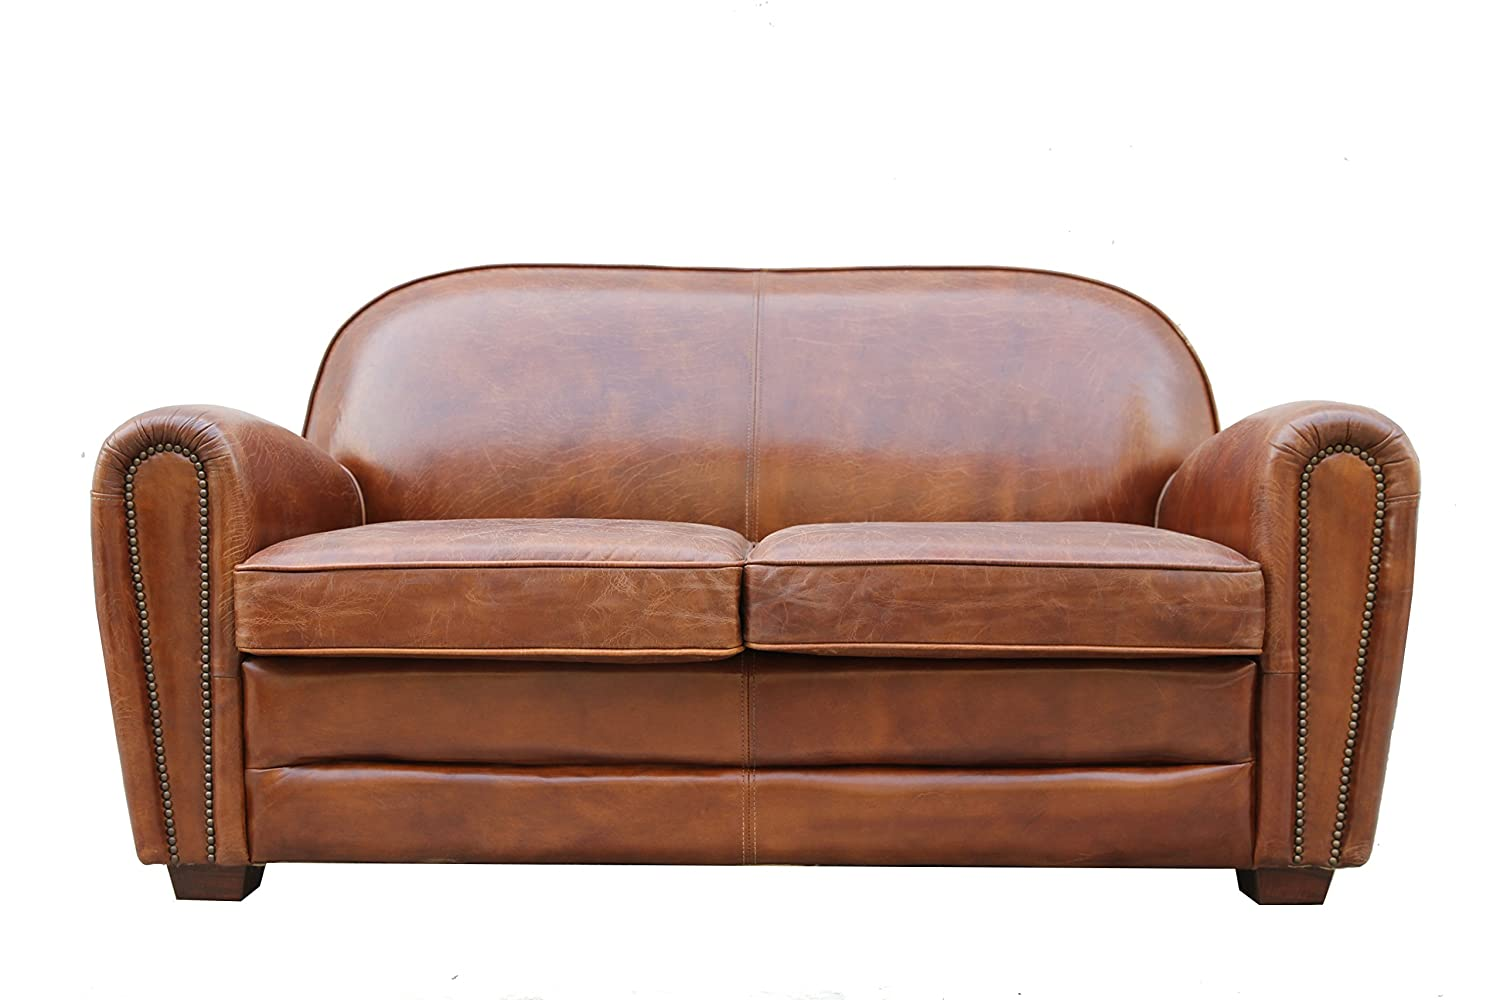 Pasargad Carpets Paris Club Genuine Leather Loveseat - 2' 9 x 5' 3